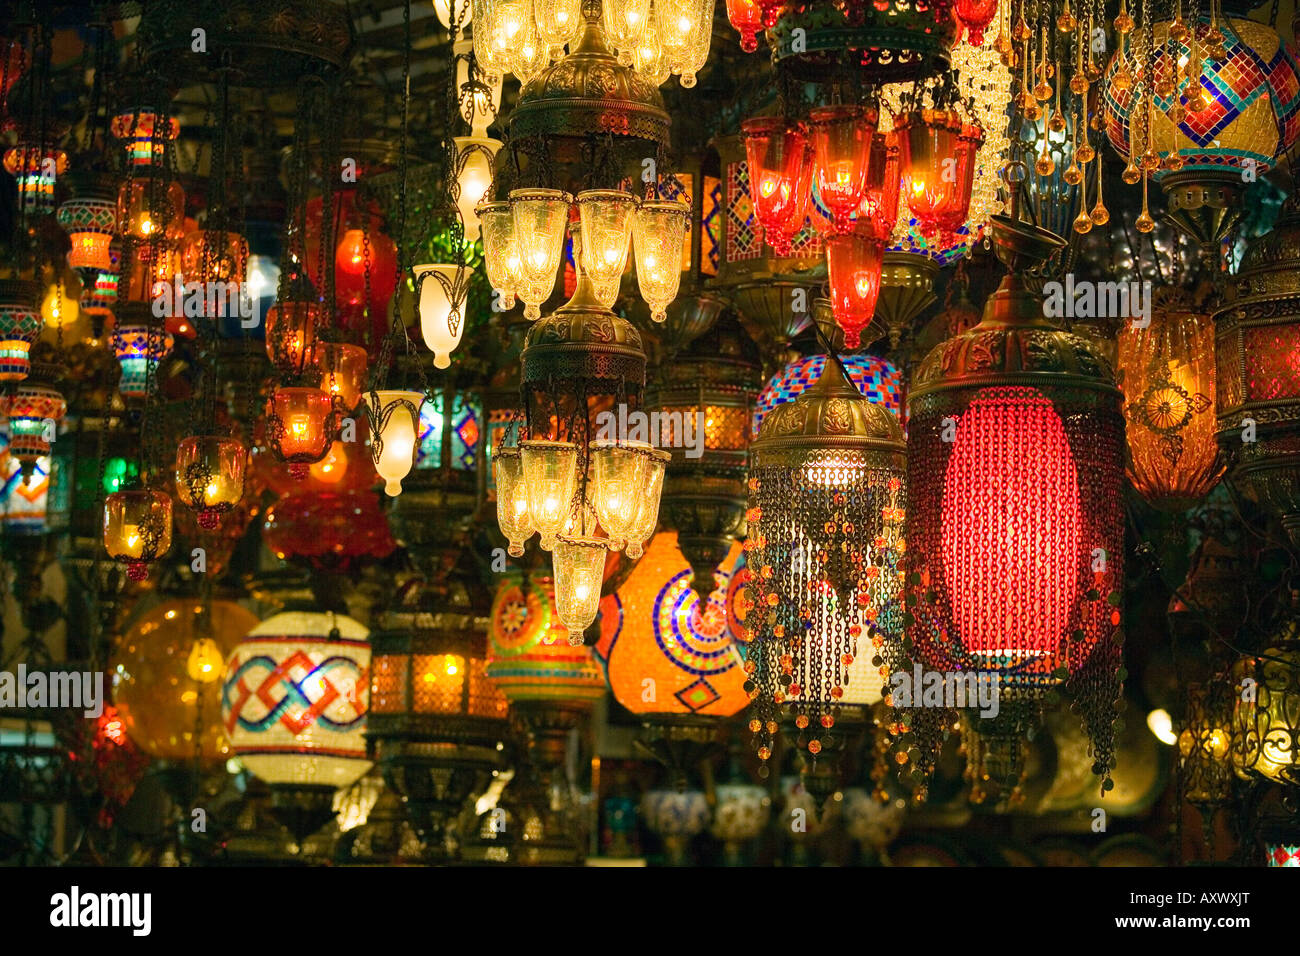 Istanbul marmara region turkey coloured glass lampshades on sale istanbul marmara region turkey coloured glass lampshades on sale in the grand bazaar kapali carsi aloadofball